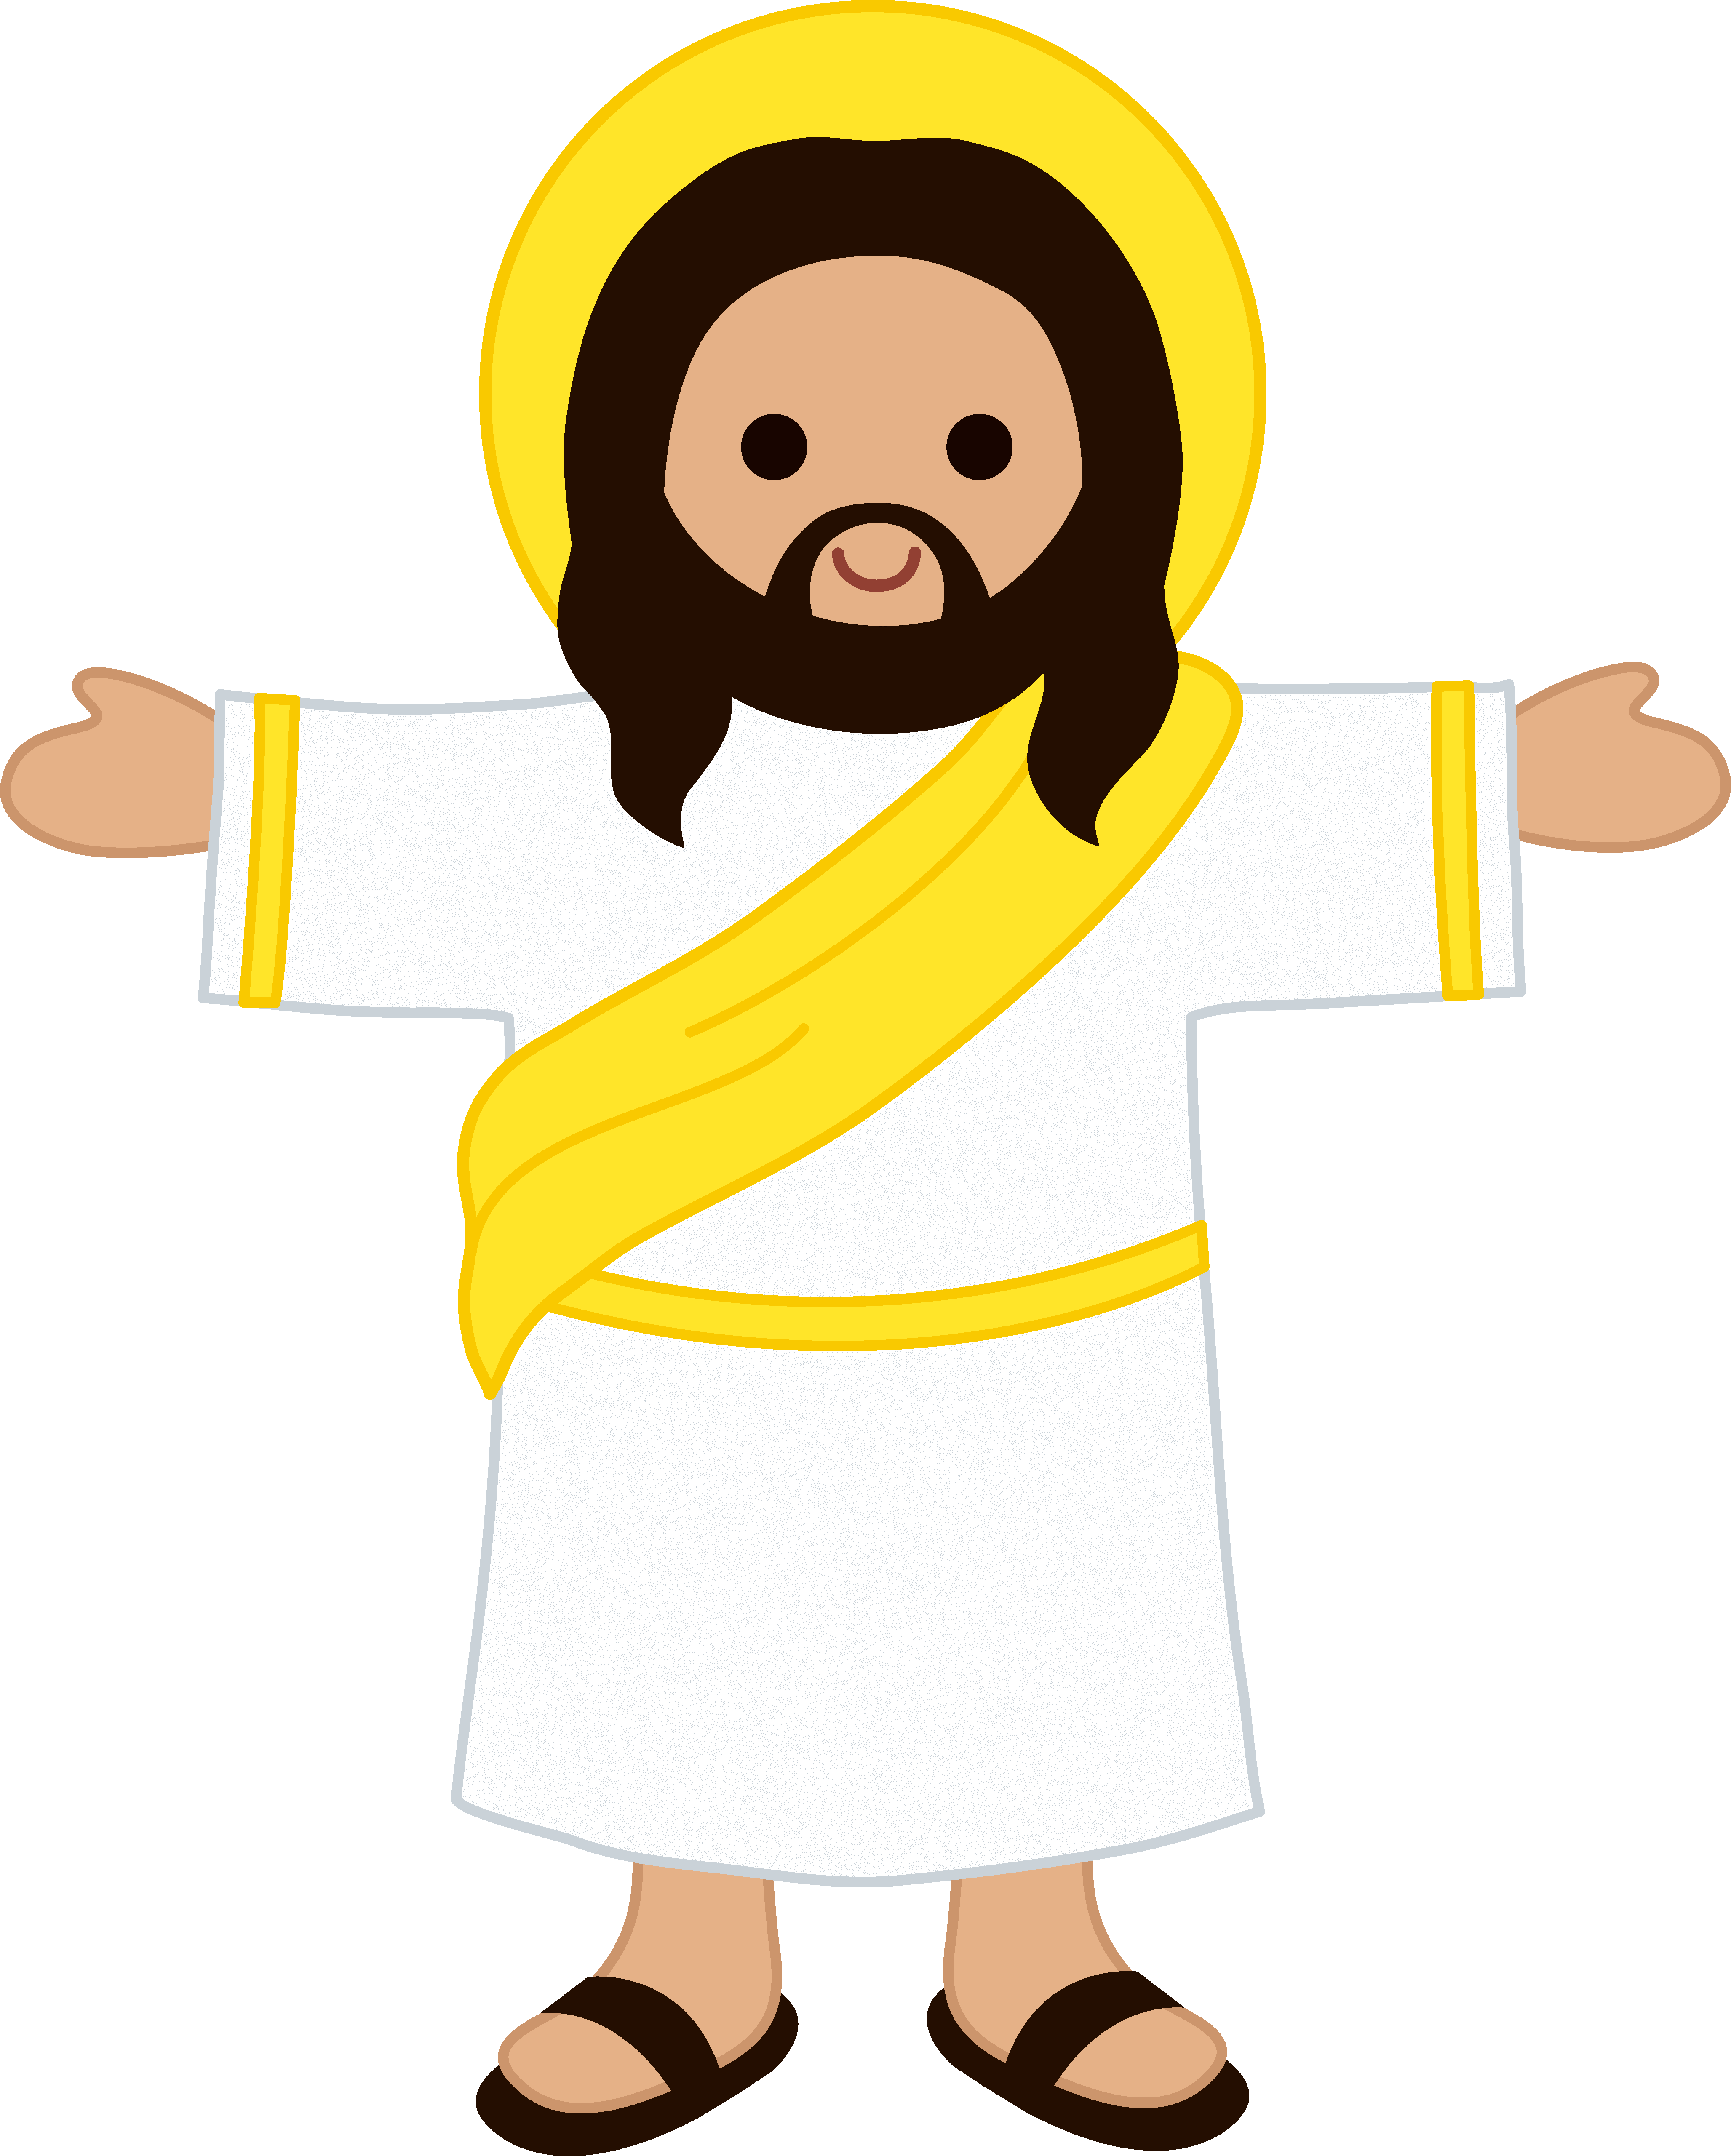 clipart freeuse stock God clipart. Free christian cliparts download.